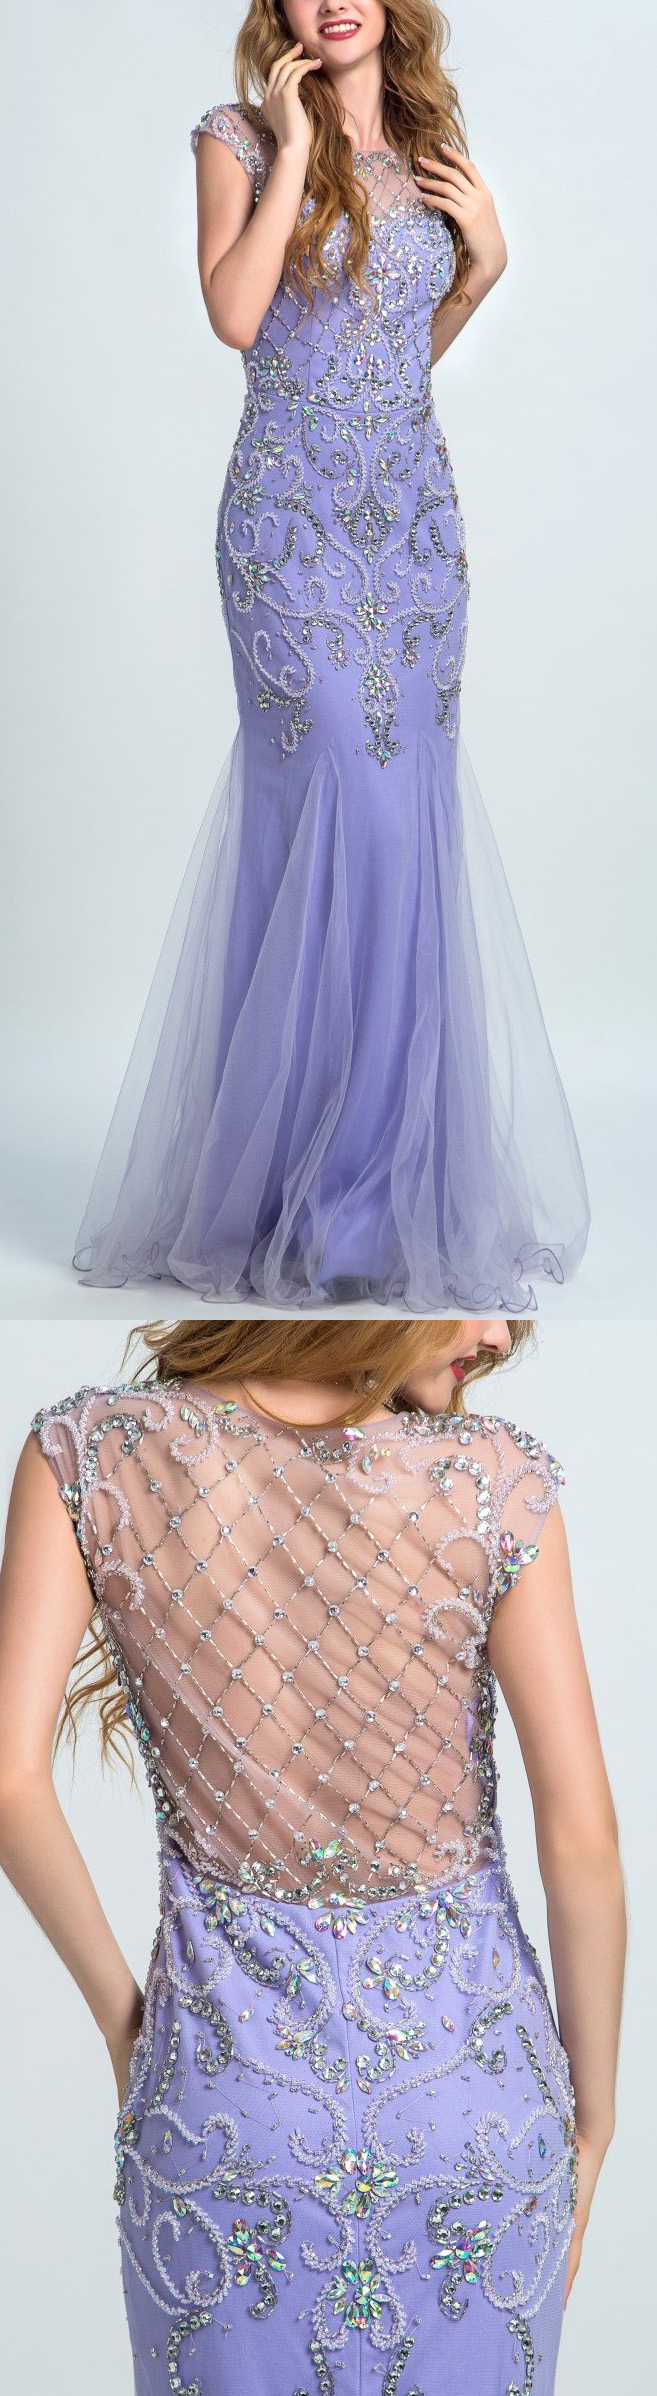 Outlet short sleeve lavender prom evening dresses magnificent long